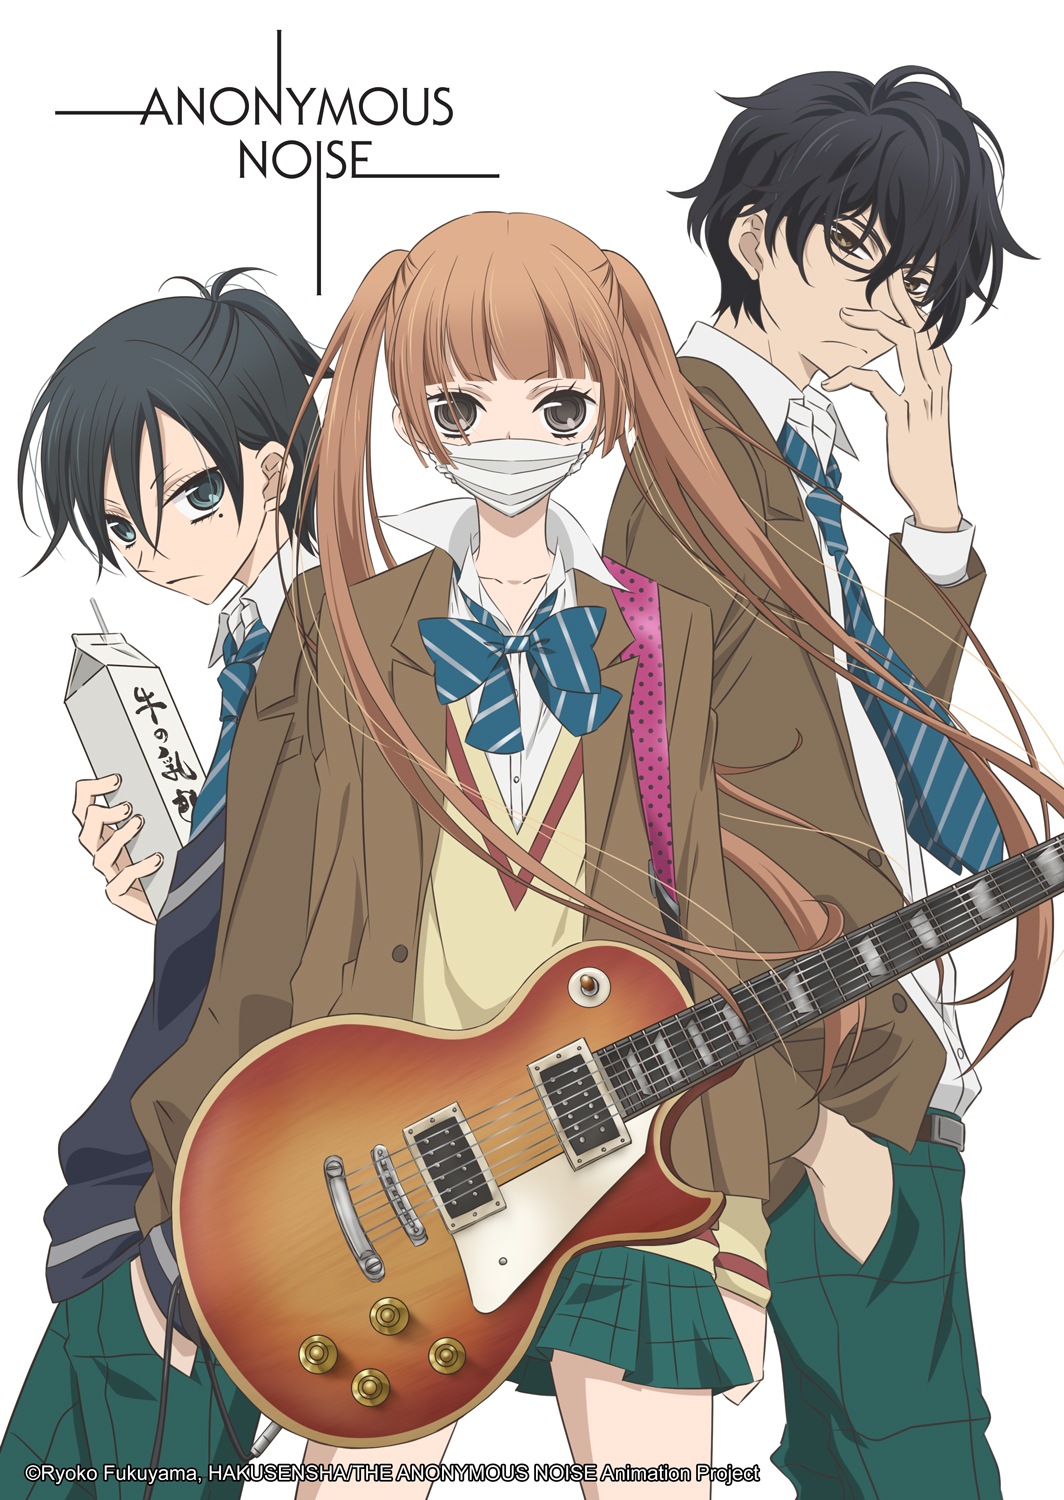 Animax_Keyart_Anonymous-Noise